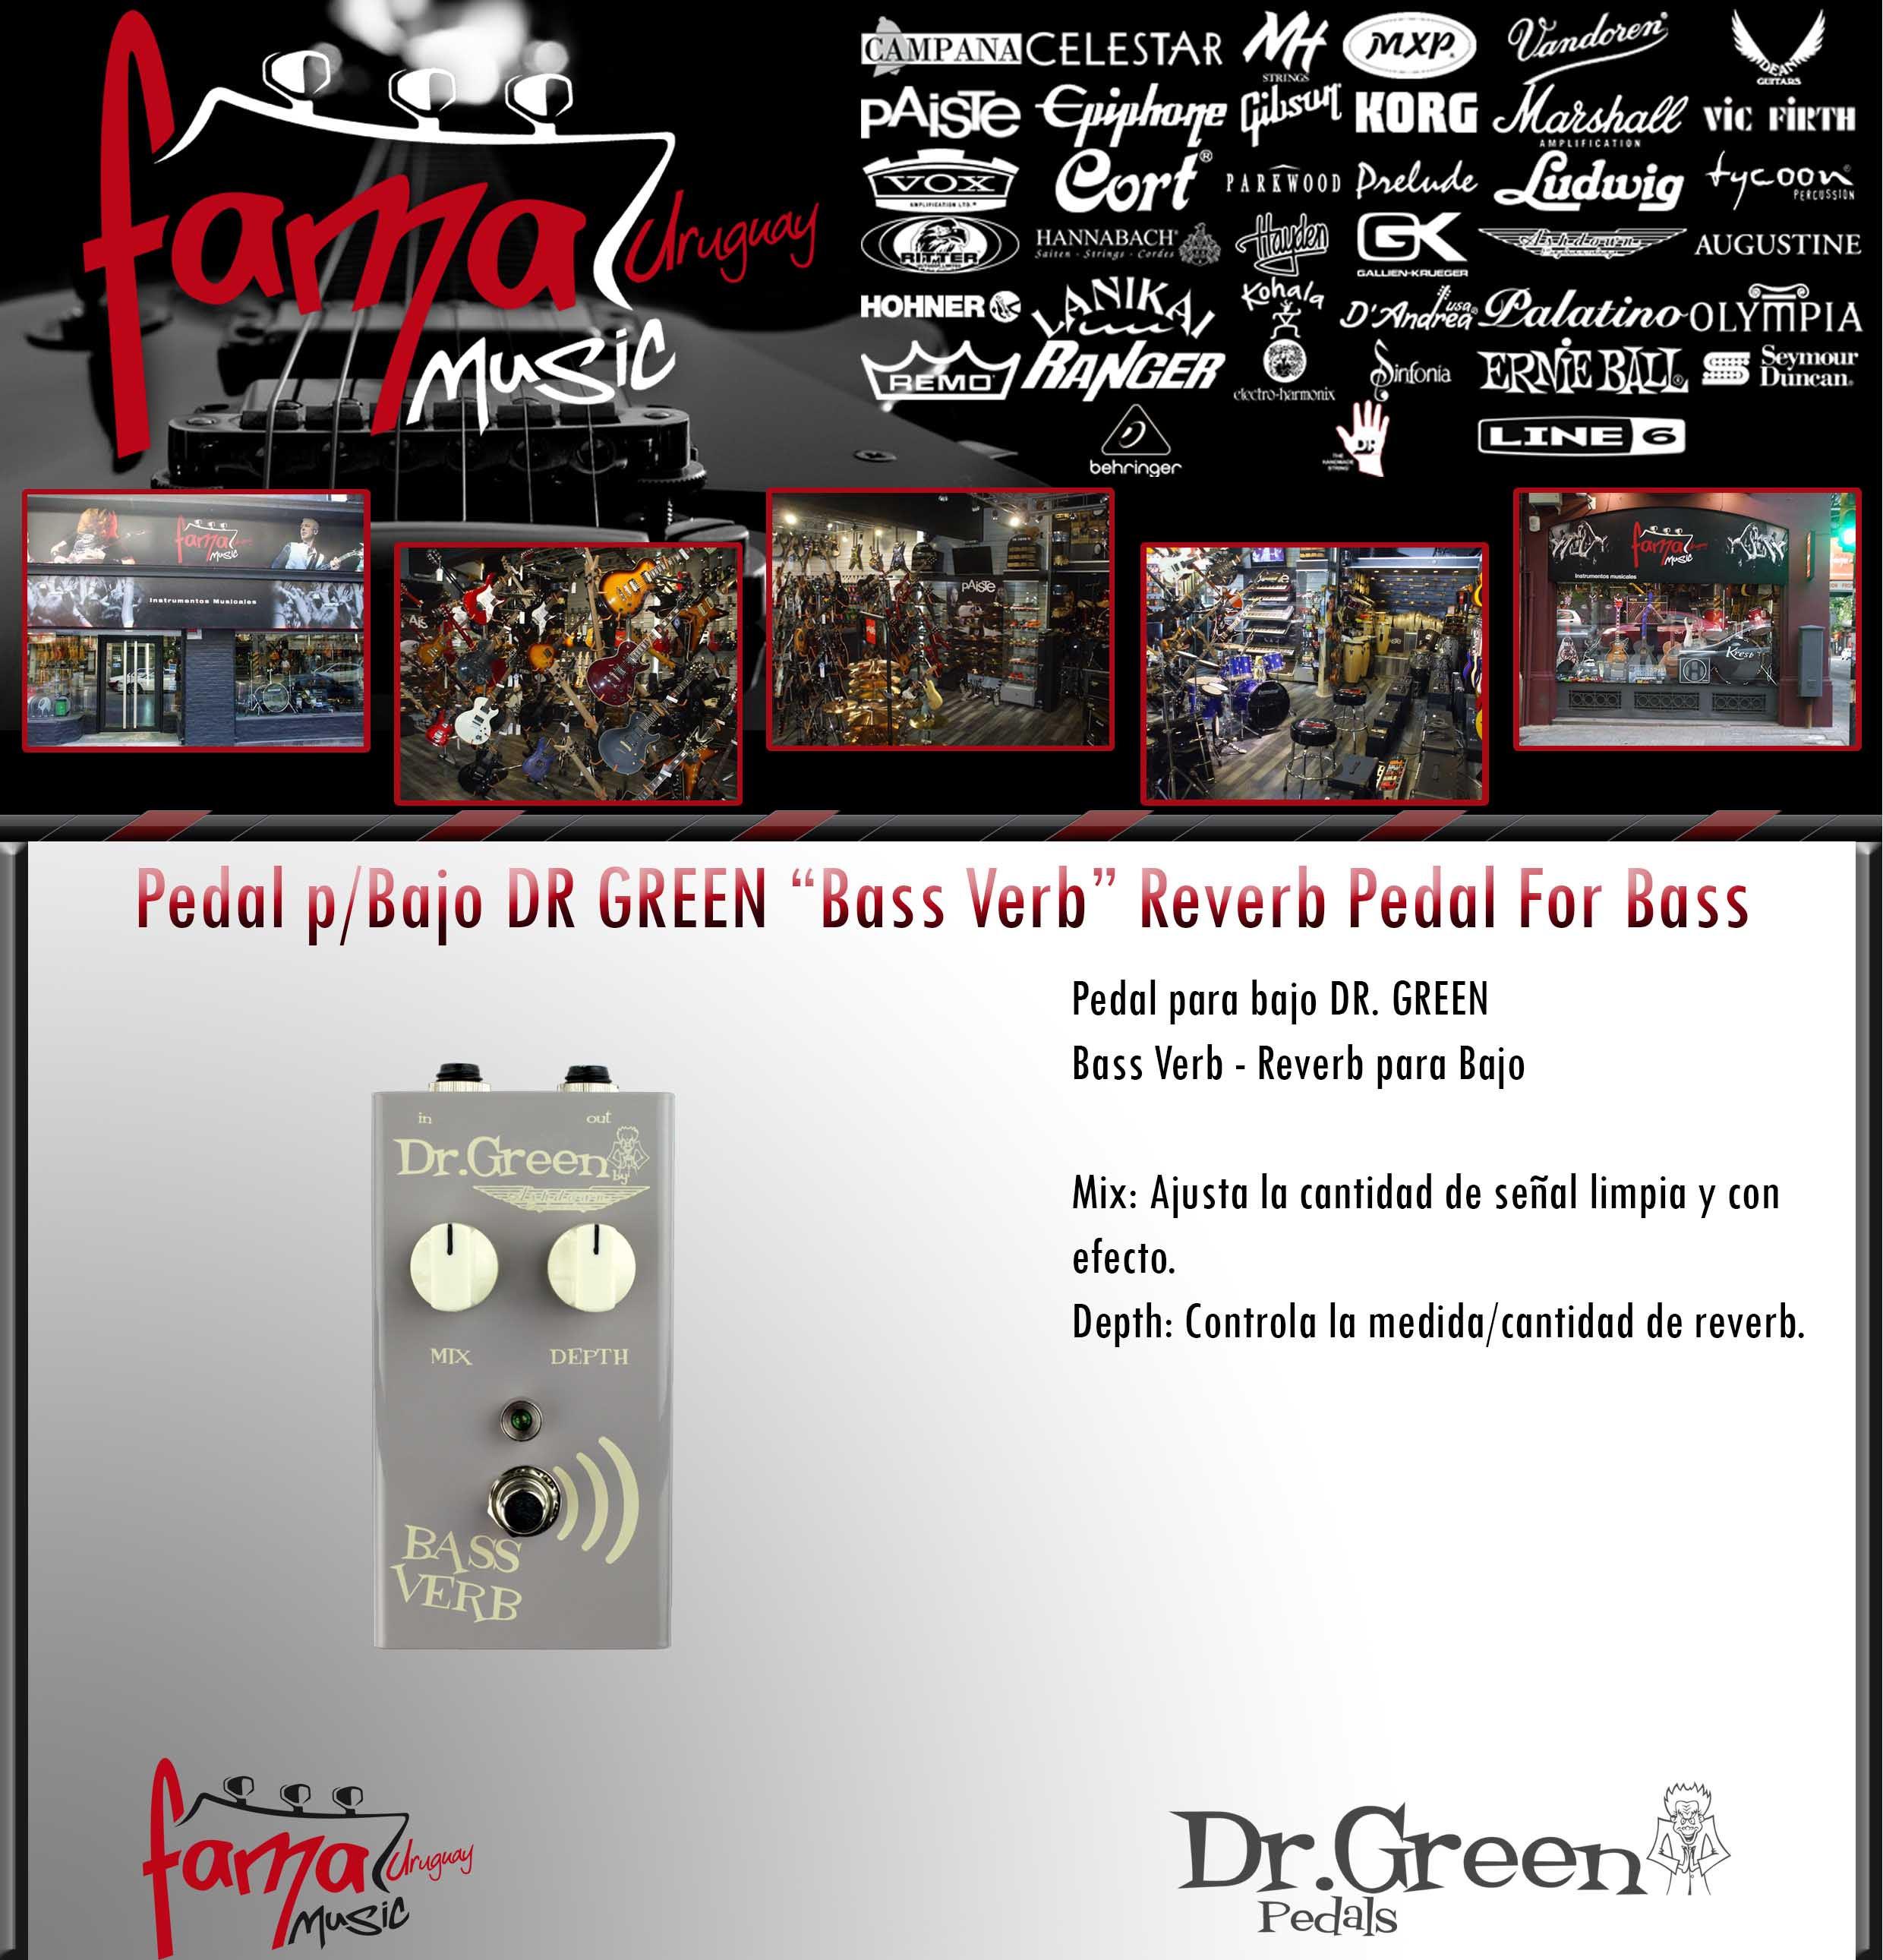 Pedal pBajo DR GREEN Bass Verb Reverb Pedal For Bass